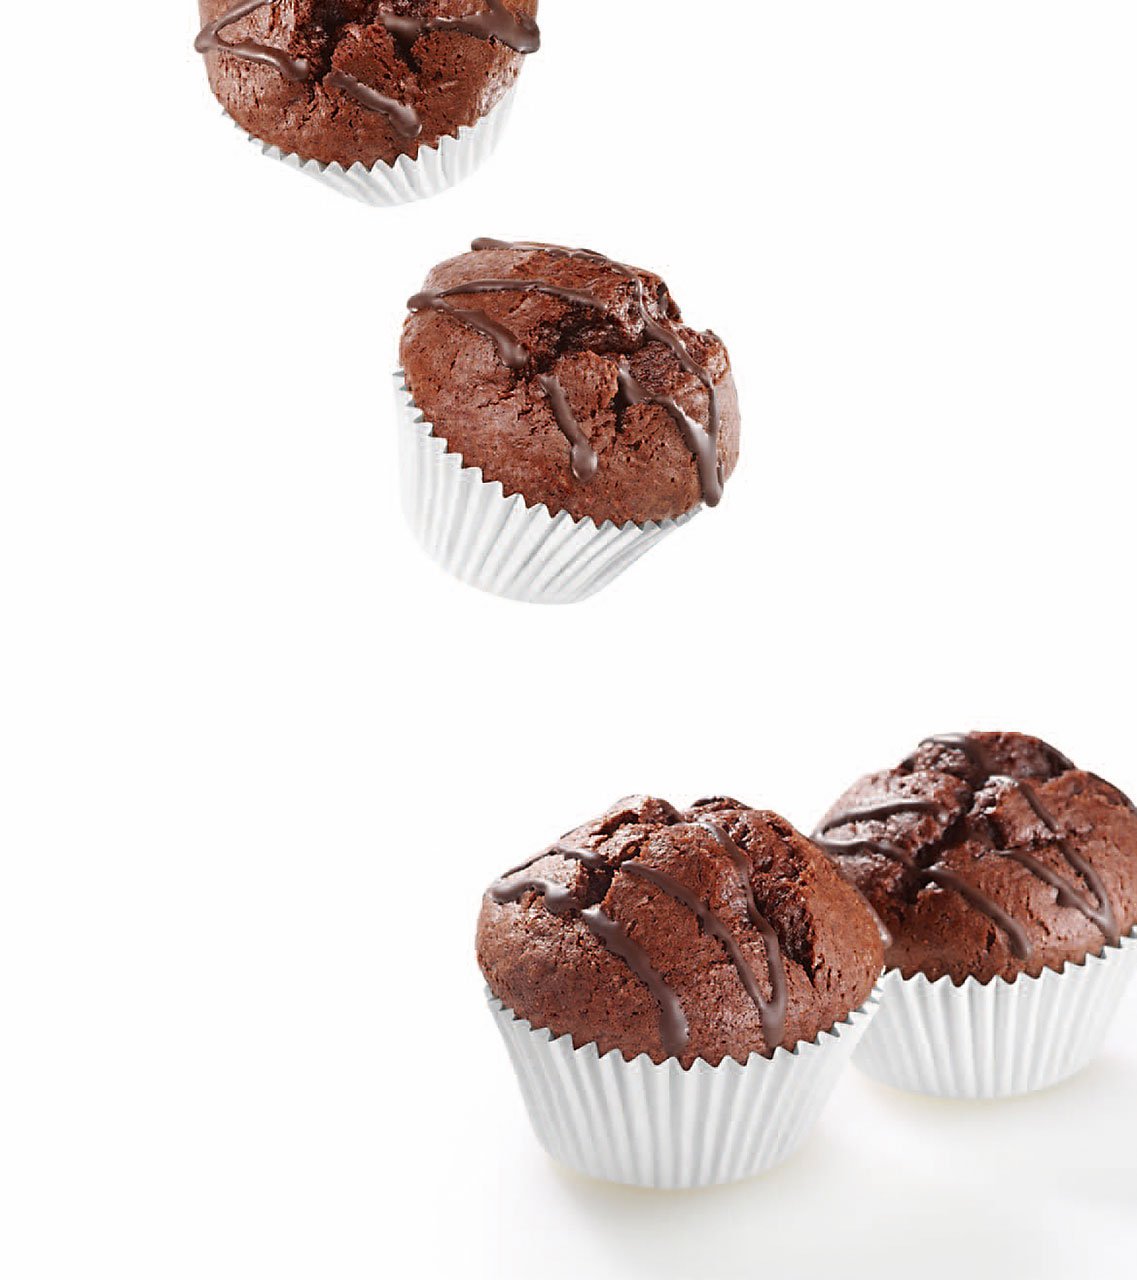 Sabine-Scheer-food-photography-chocolate-muffin